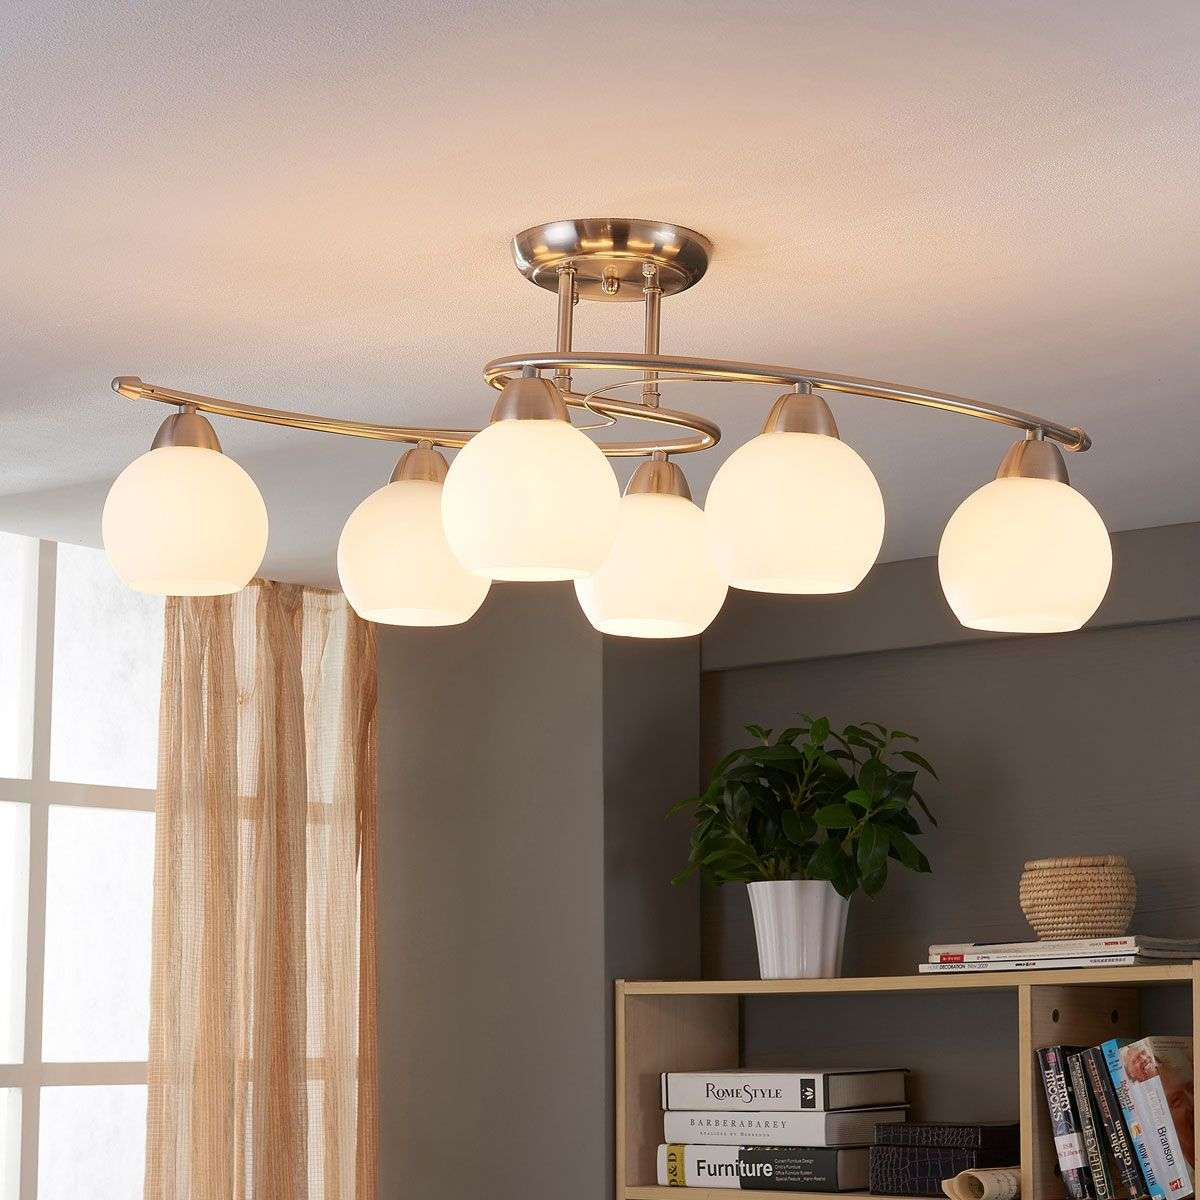 Dining Room Ceiling Lamps: Dining Room Ceiling Light Svean, 6 Bulbs